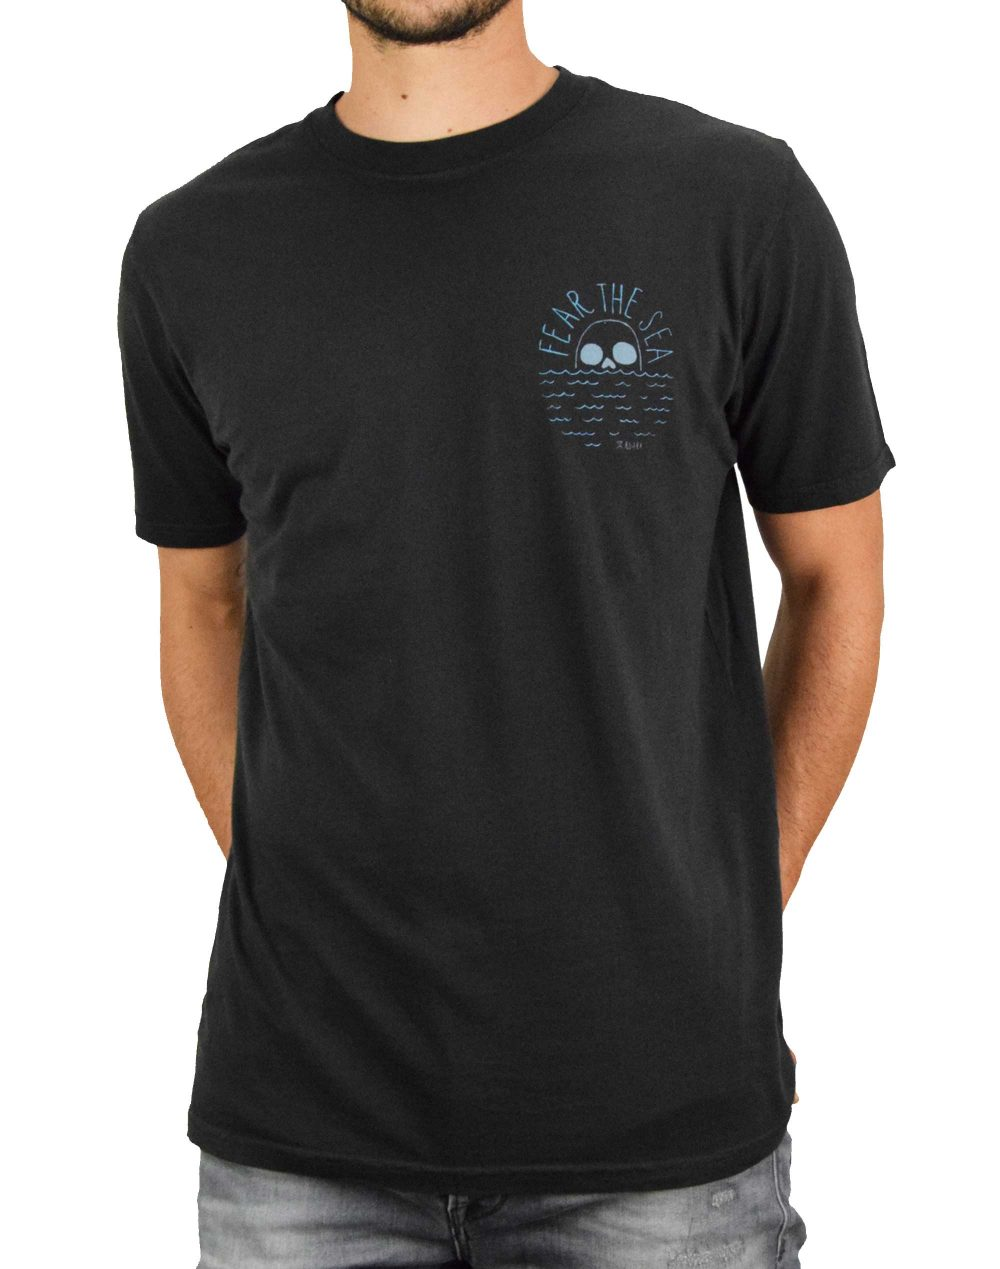 Roark Fear The Sea Tee (RT684) Black